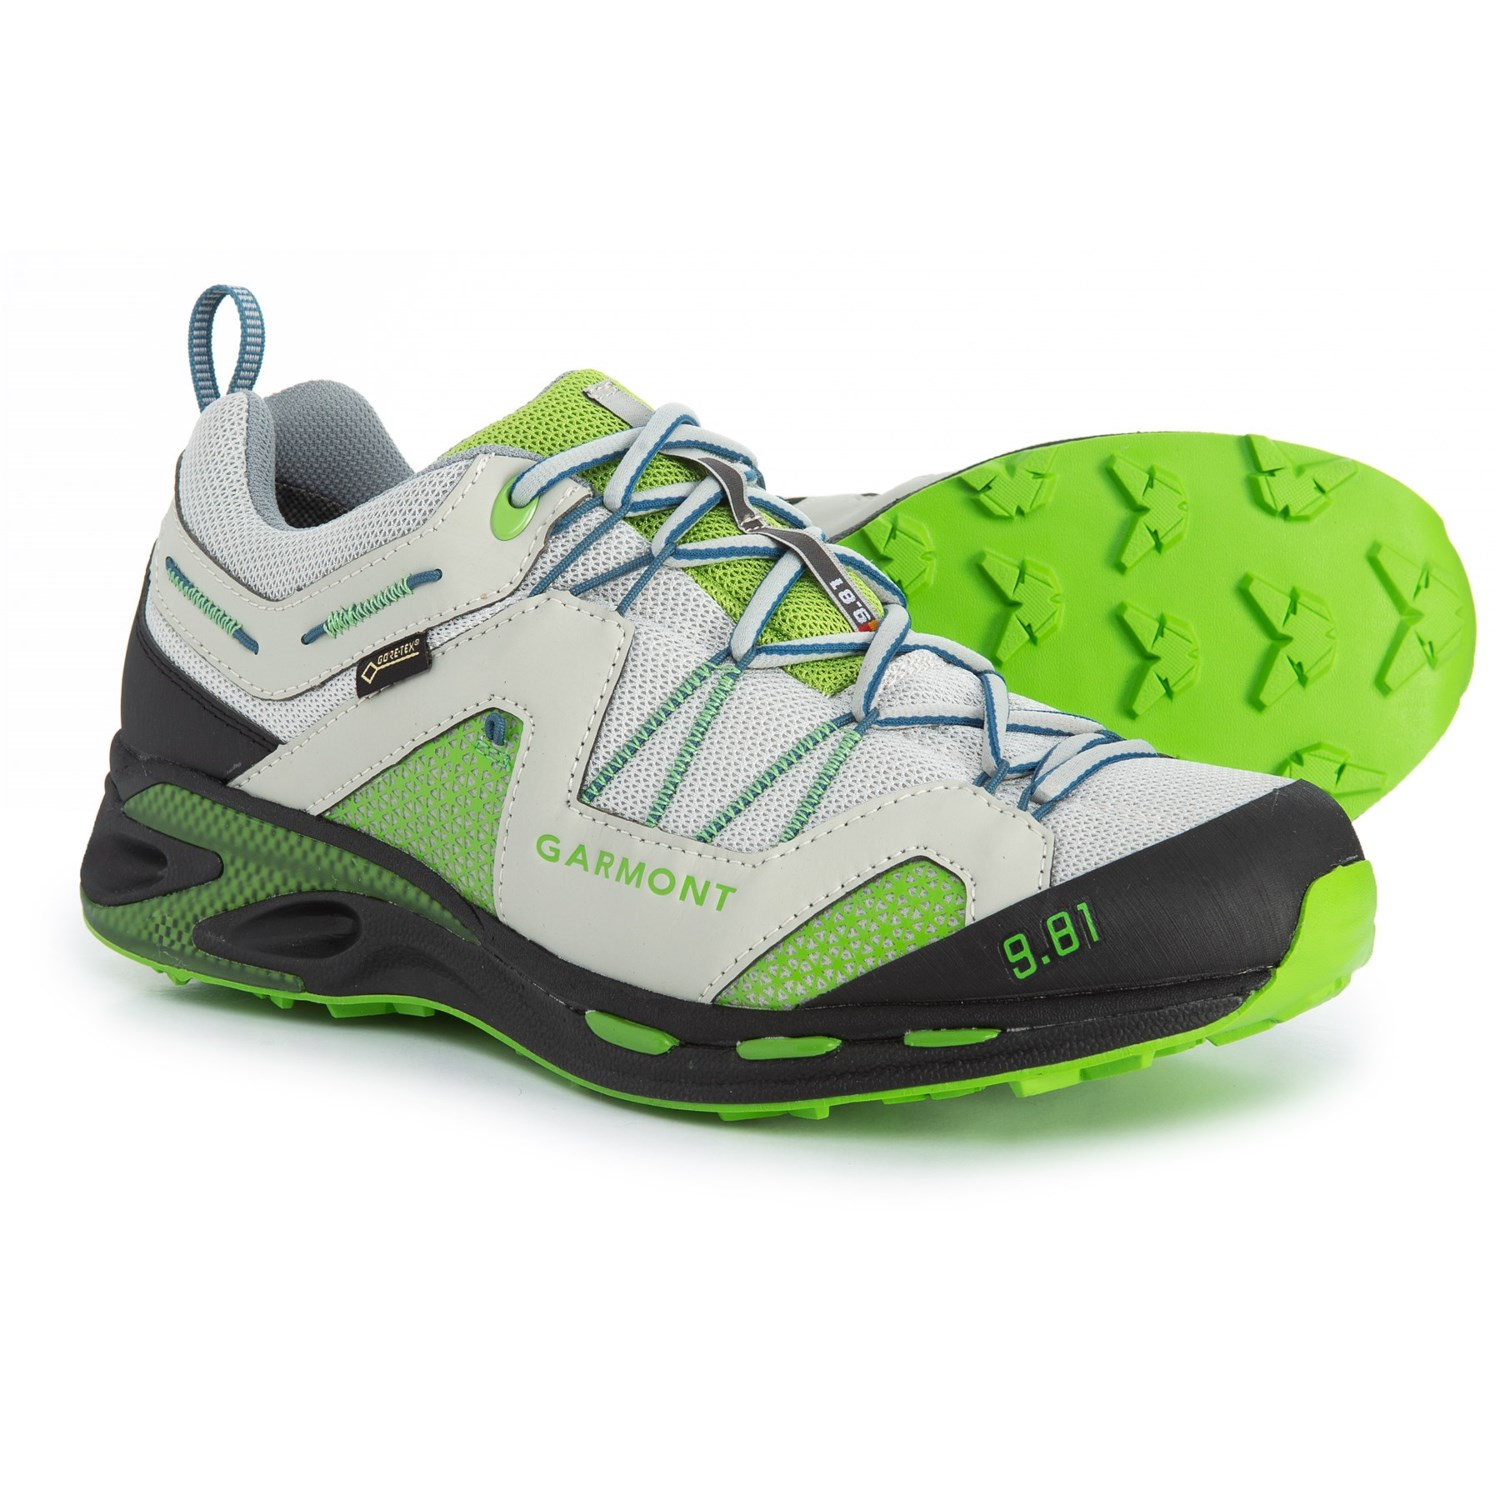 59291782a4e Garmont 9.81 Trail Pro III Gore-Tex® Trail Running Shoes - Waterproof (For  Men)